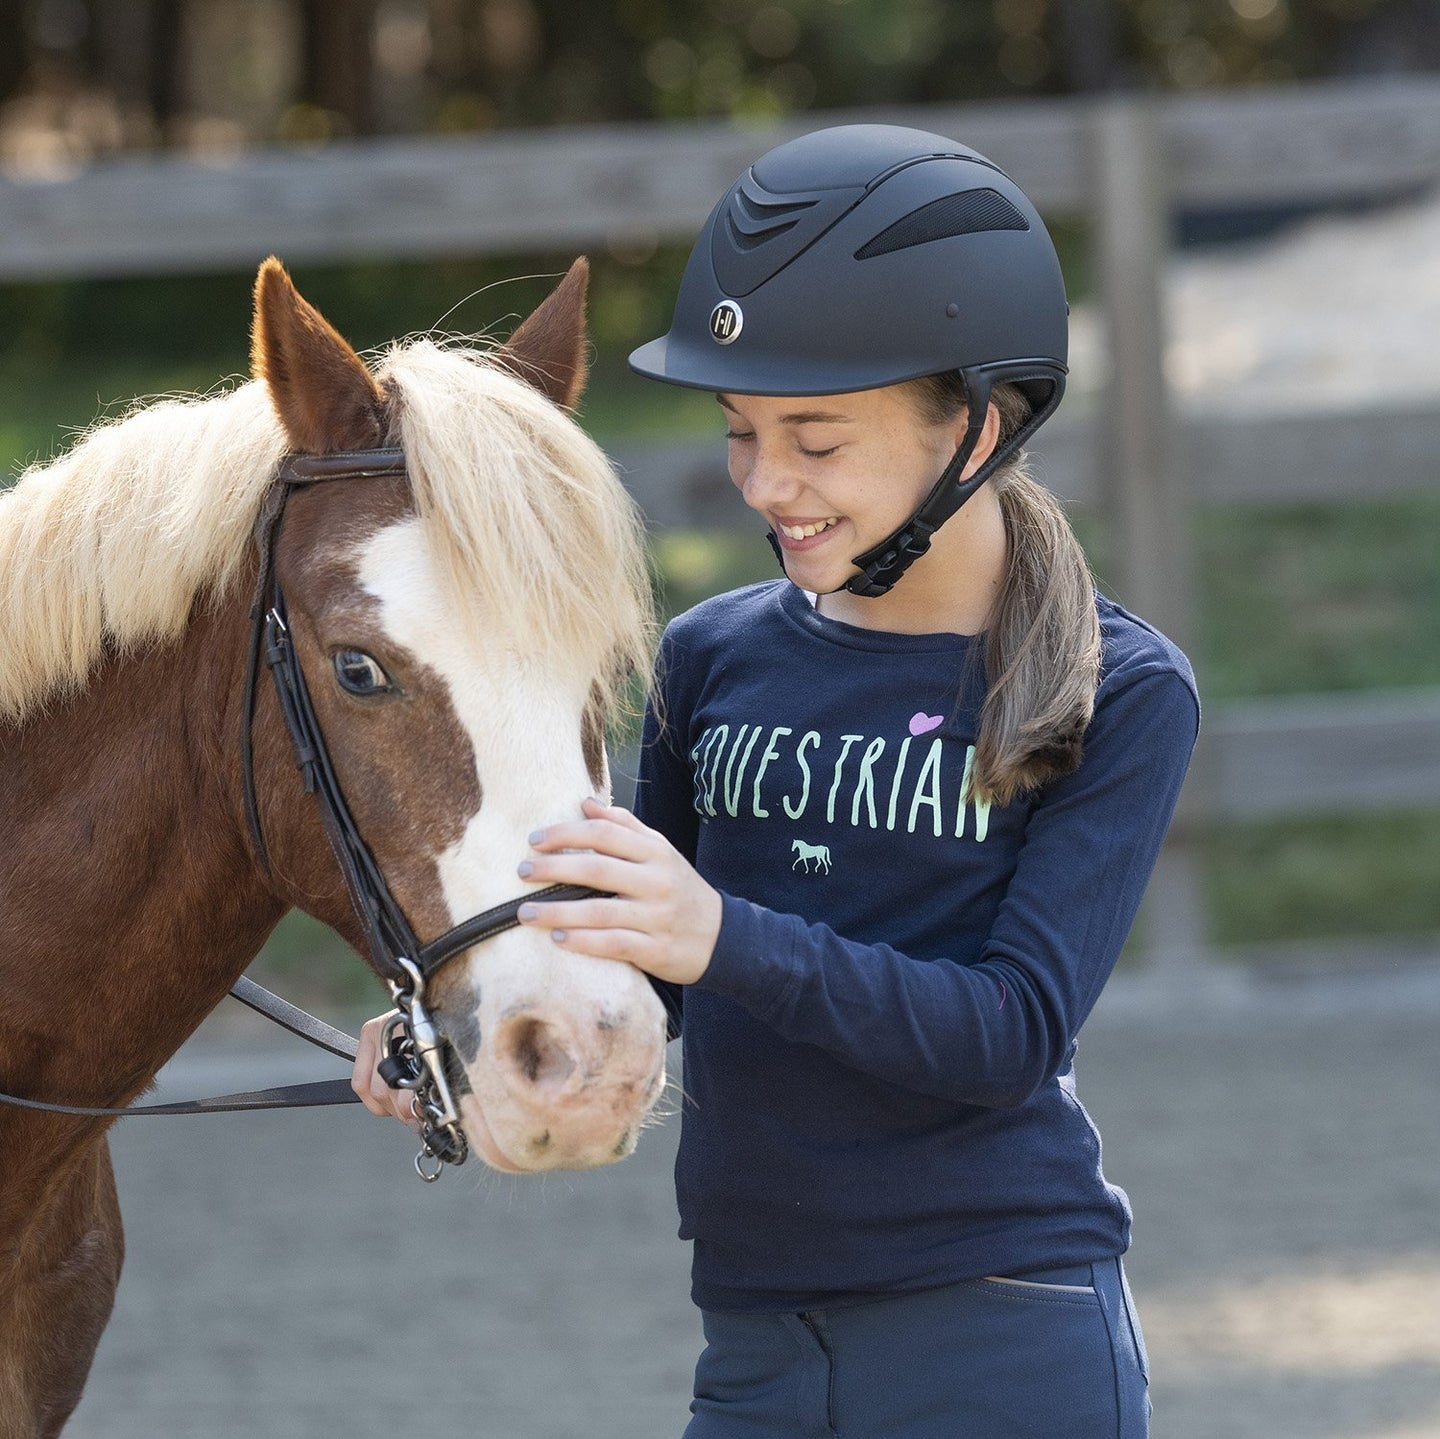 20553 - Equestrian With Heart Girls Long Sleeve Tee